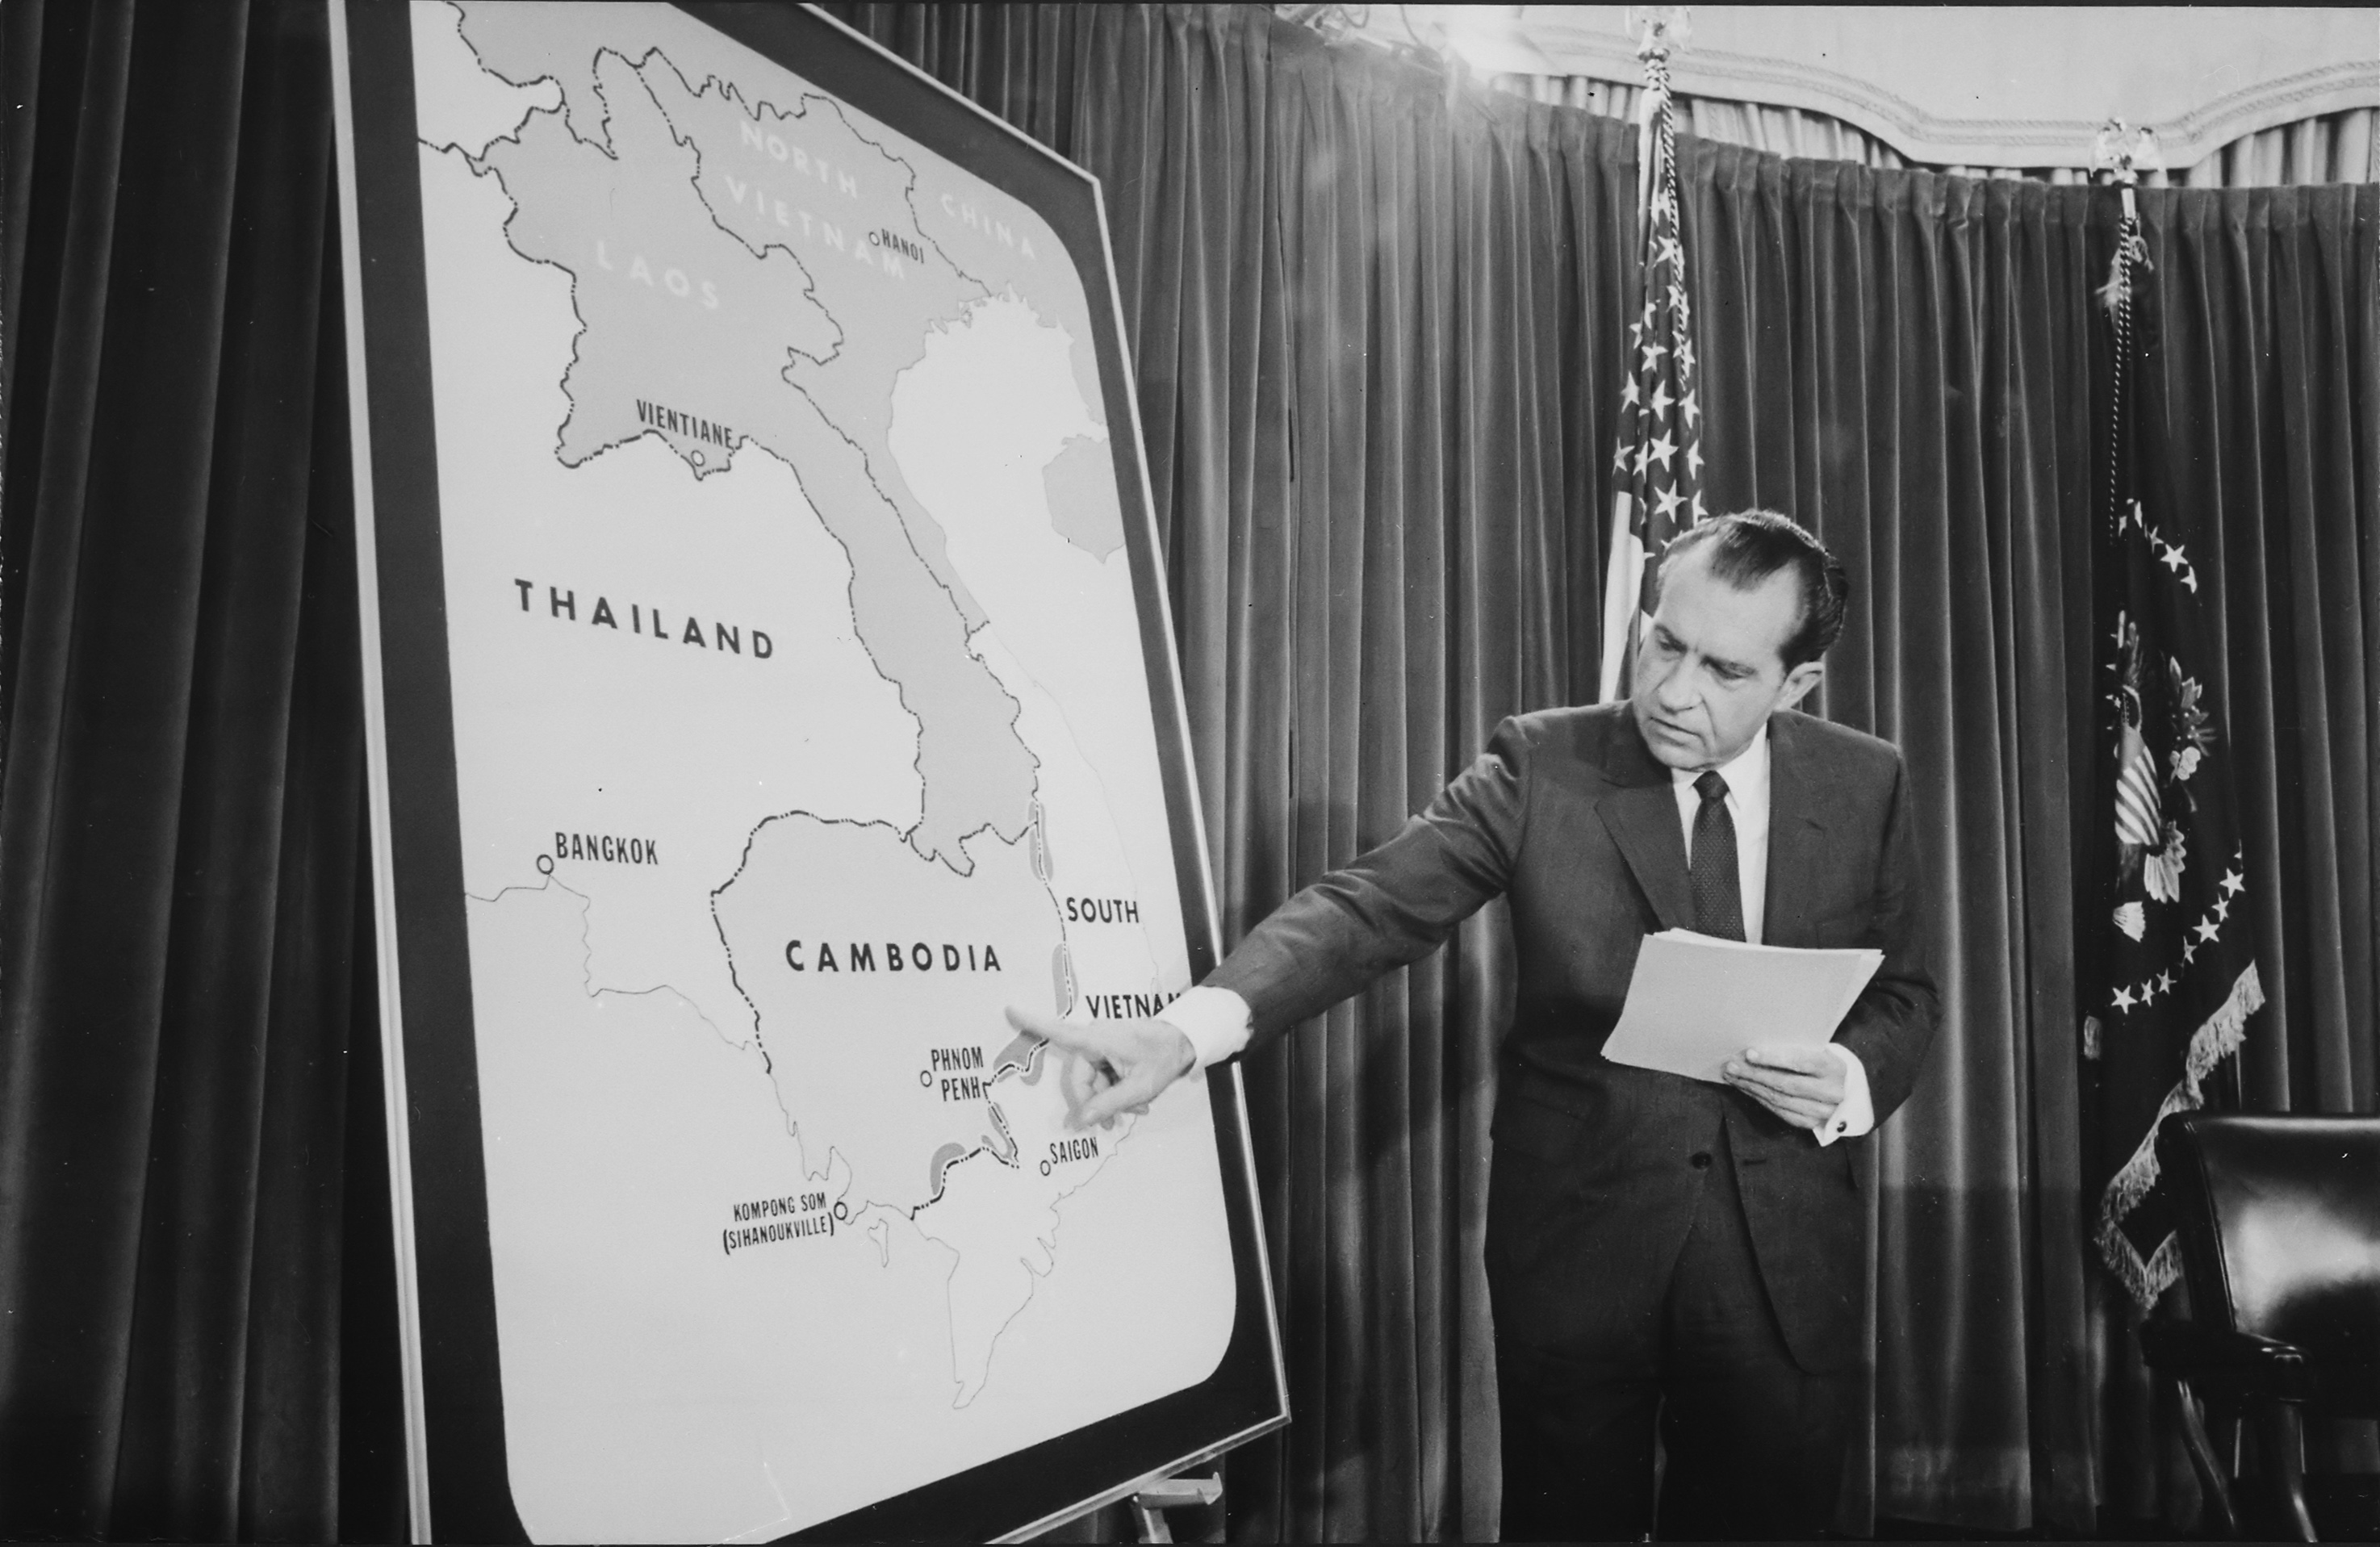 Where can I get American news broadcasts from the Vietnam War to help with my coursework?